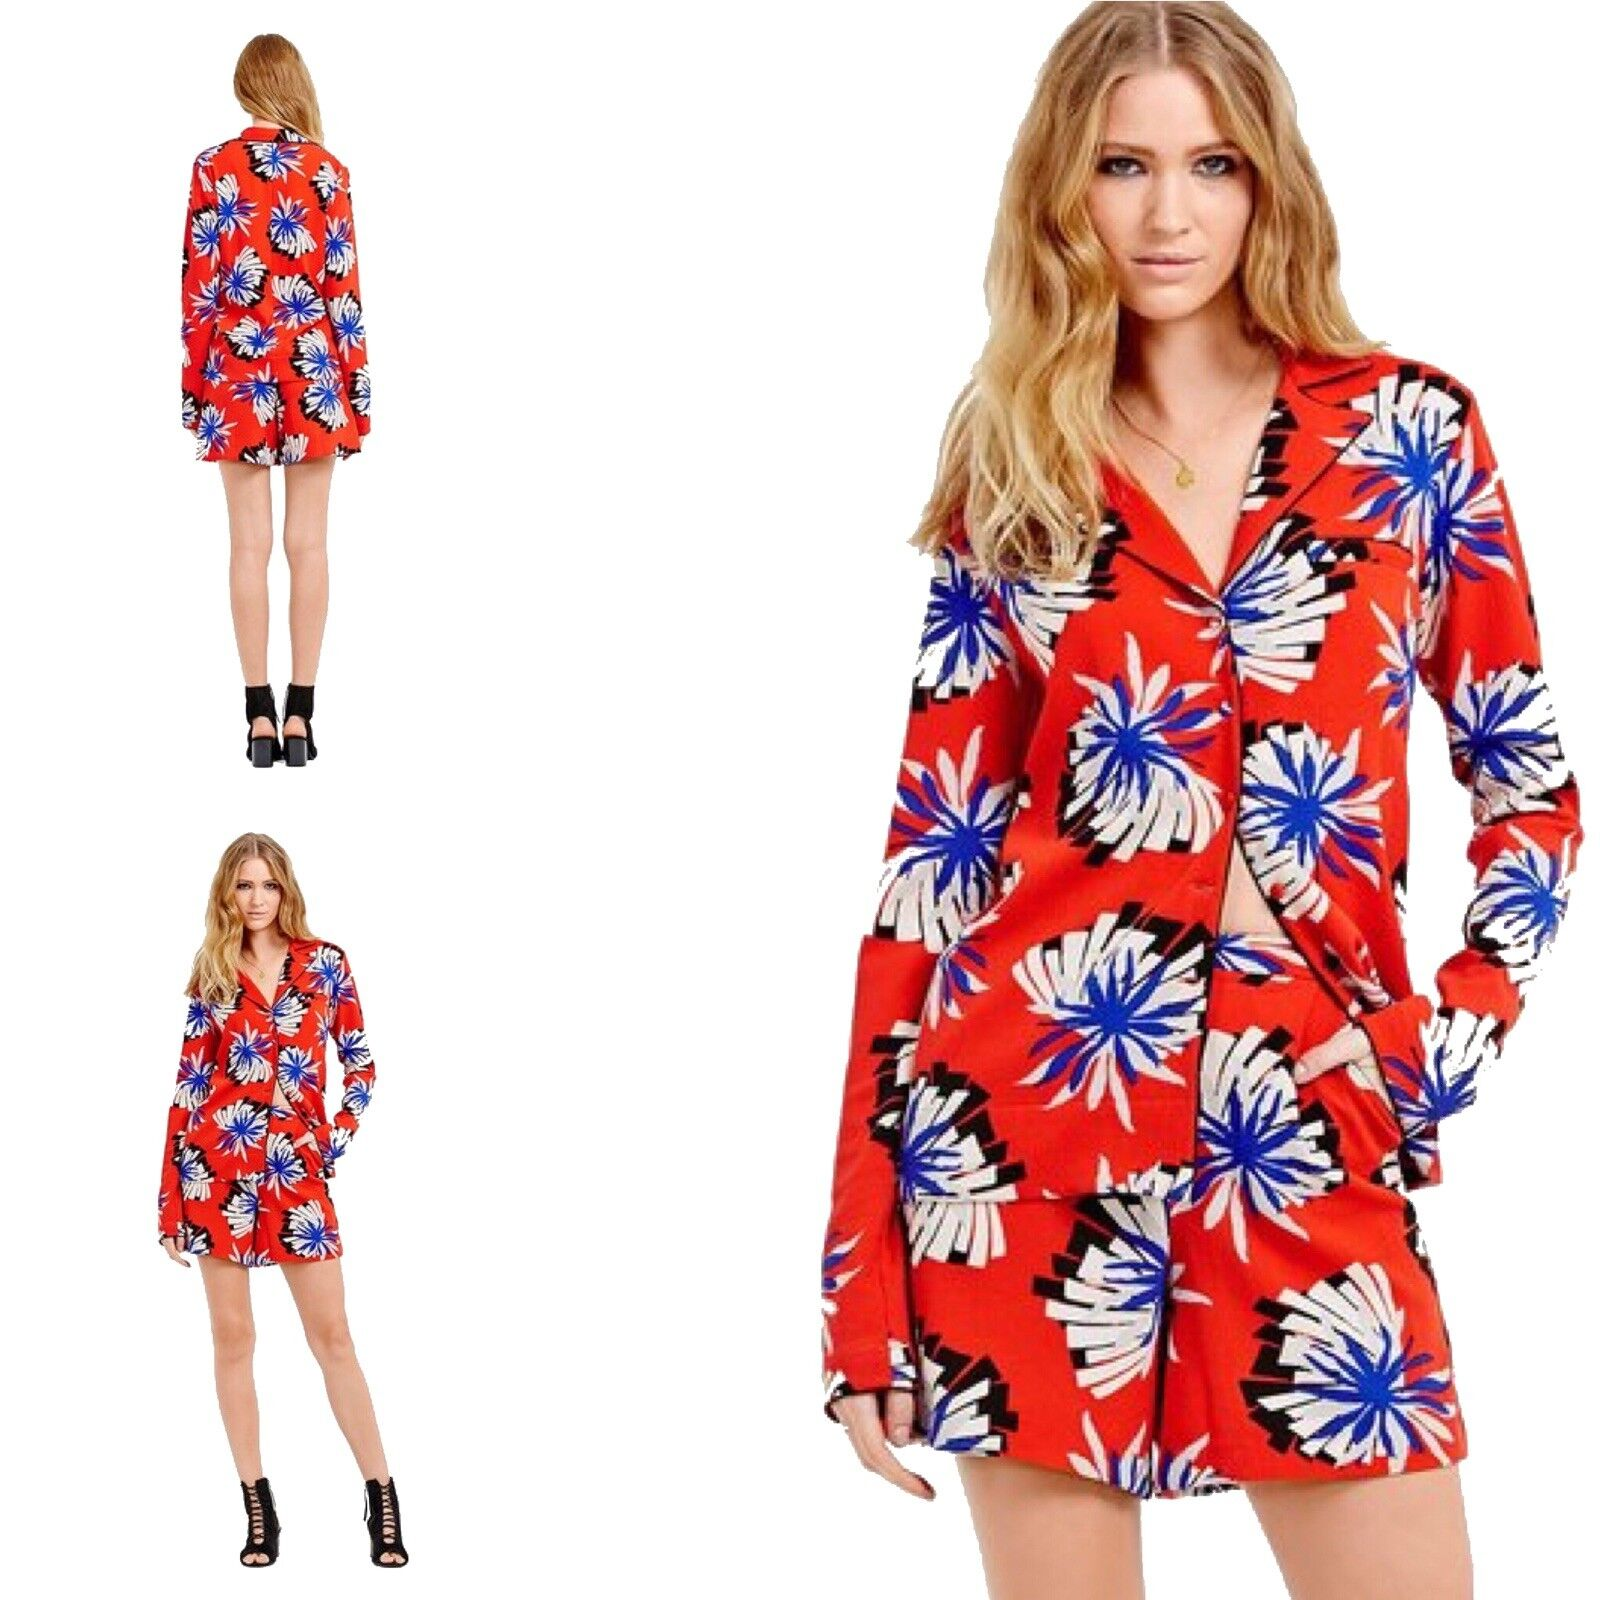 SZ 6 TTYA x LONG TALL SALLY ORIGAMI FLOWER OVER SHIRT + SHORTS 2 PC rot Blau